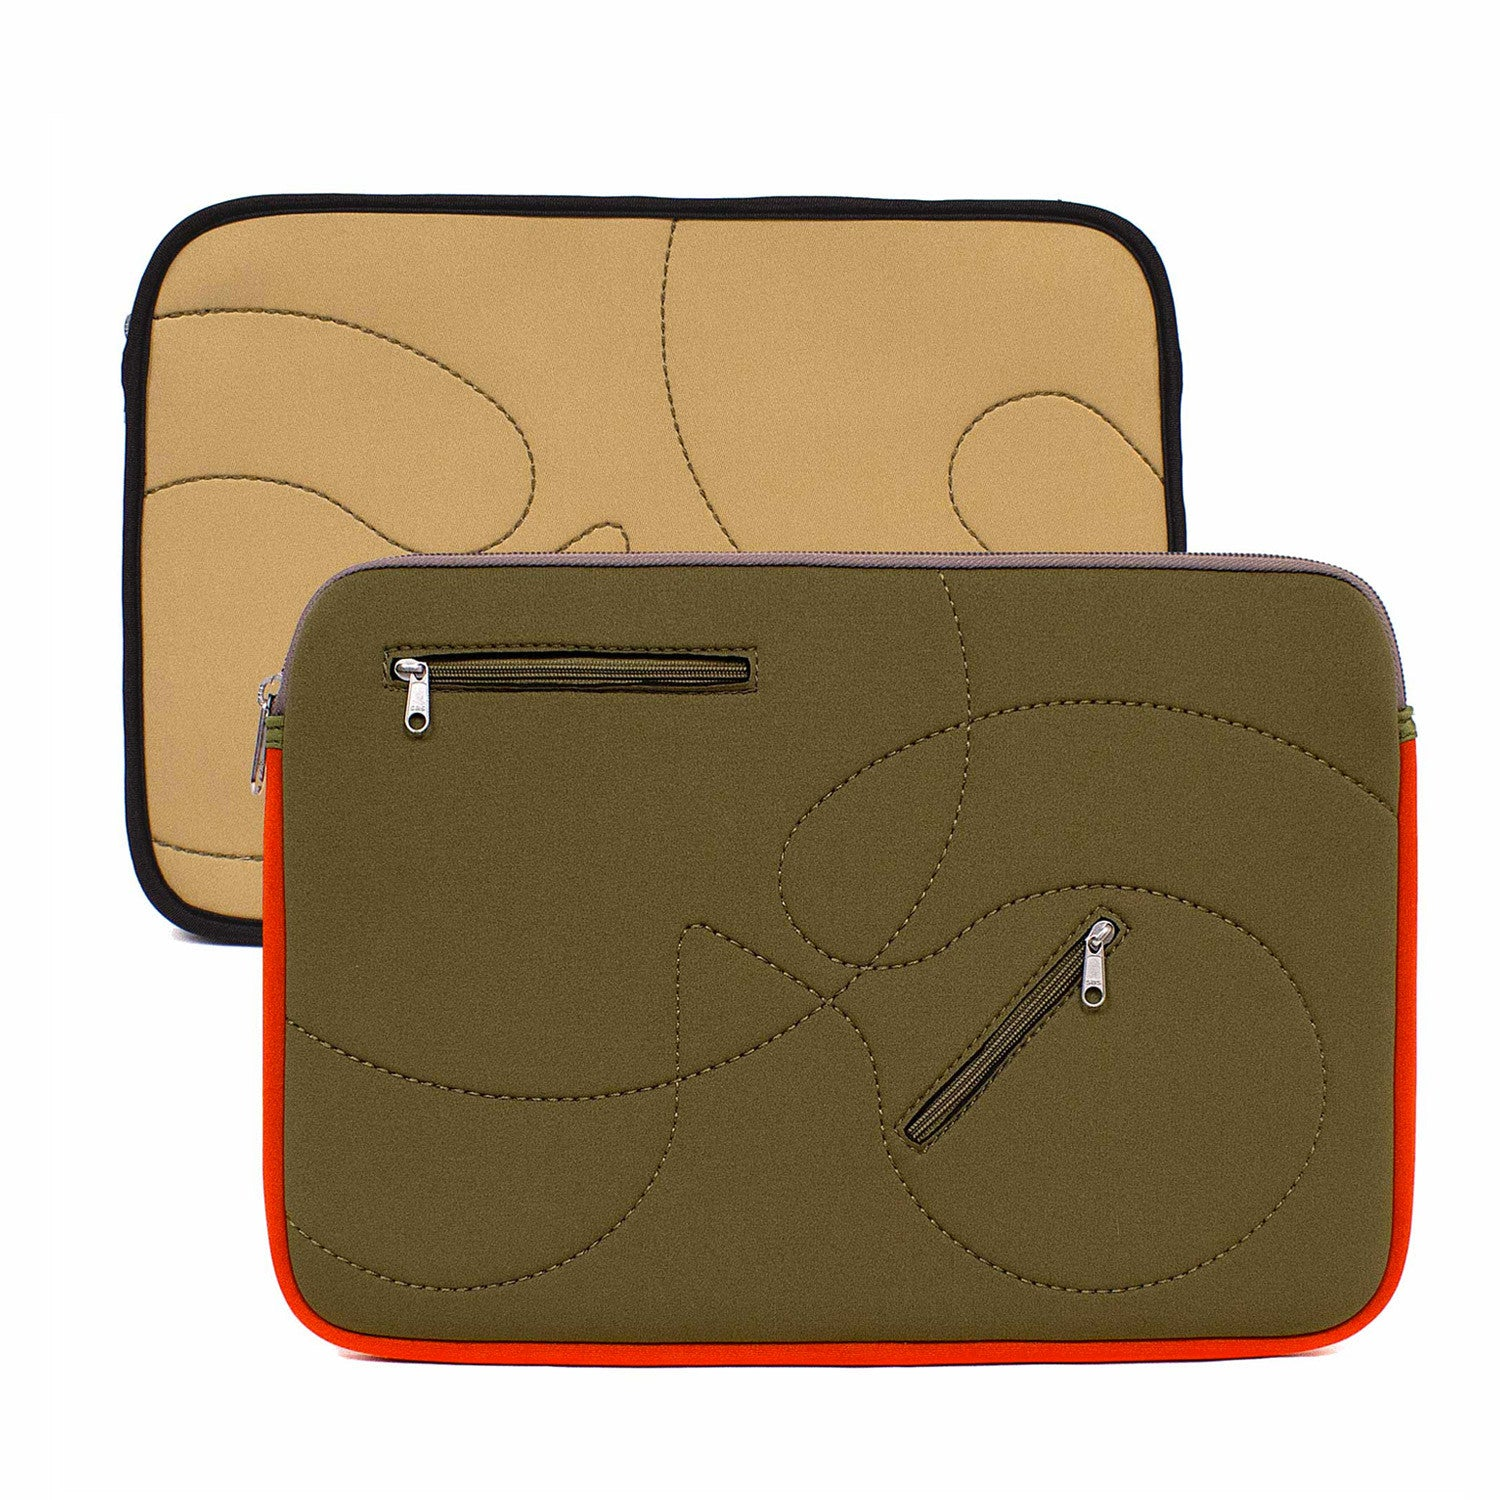 "Reversible Hoptu 11"" Sleeve Laptop & Tablet Cases - Looptworks"